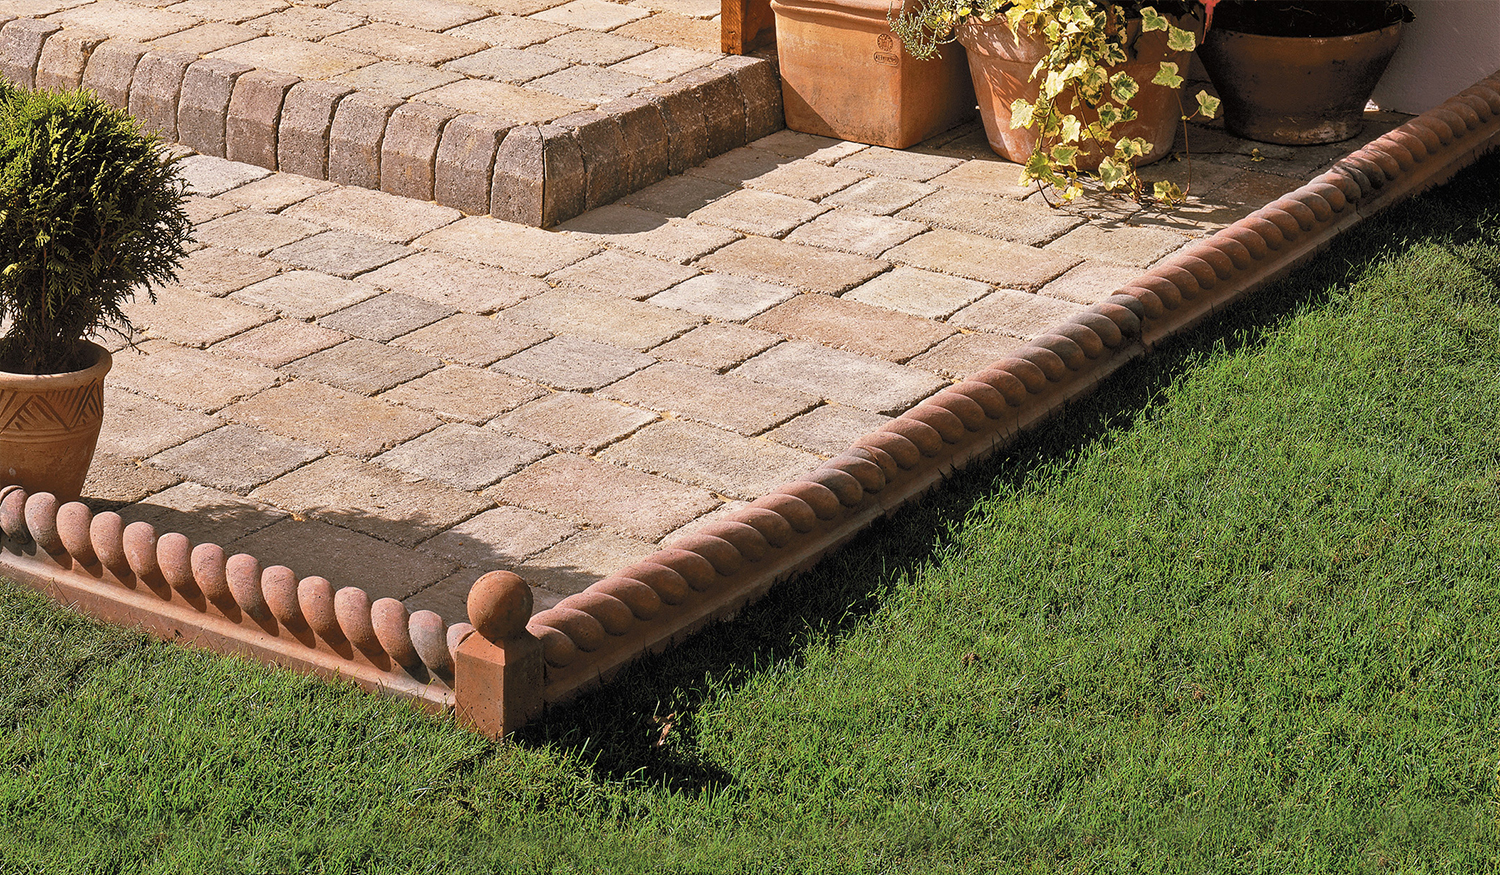 HOW TO TREAT BLOCK PAVING WITH CHEMICALS AND ACIDS